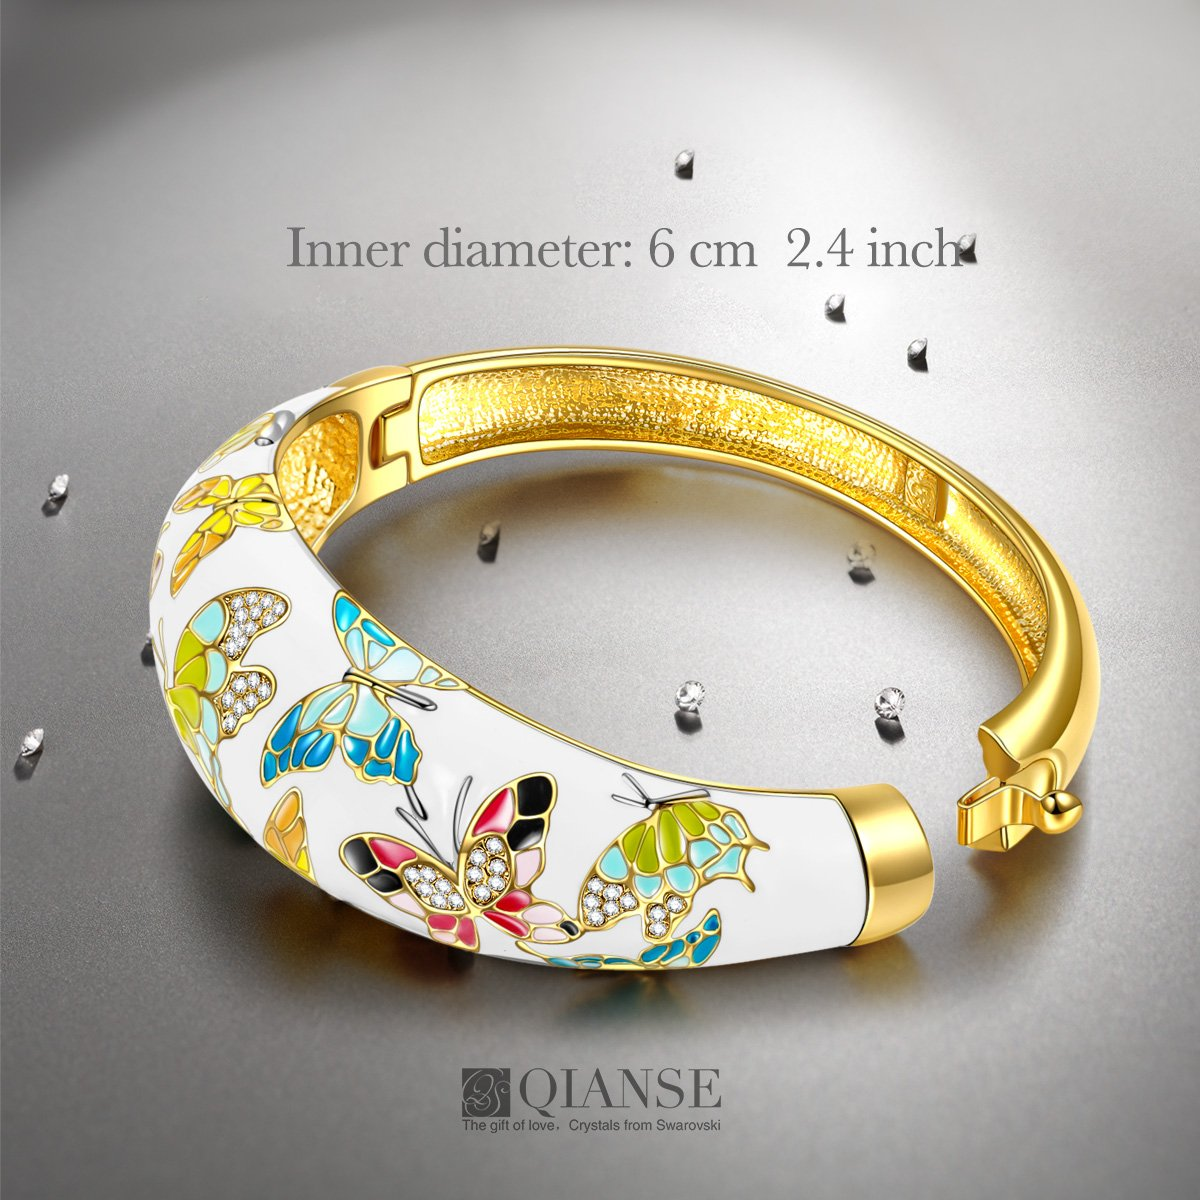 QIANSE Spring of Versailles Yellow Gold Bangle Bracelets Enamel Butterfly Bangles for Women Jewelry for Women Birthday Gifts for Mom Girlfriend Daughter Grandma Mother in Law Present by QIANSE (Image #2)